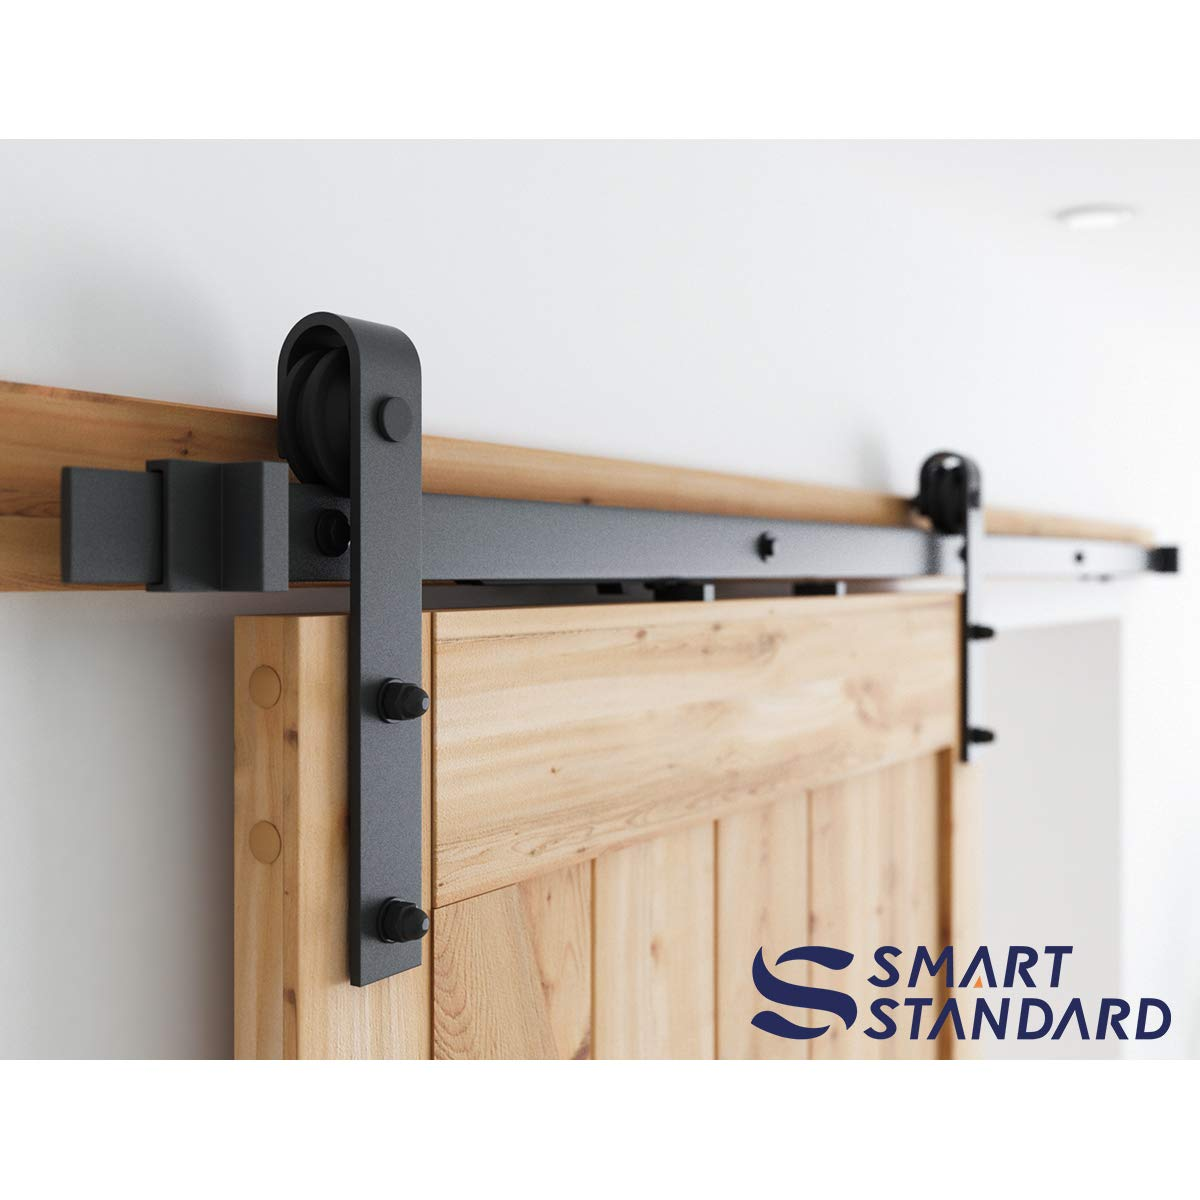 6.6ft Soft Close Heavy Duty Sturdy Sliding Barn Door Hardware Kit - Smoothly and Quietly - Simple and Easy to Install - Includes Step-By-Step Installation Instruction -Fit 36''-40'' Door Panel(J Shape) by SMARTSTANDARD (Image #3)